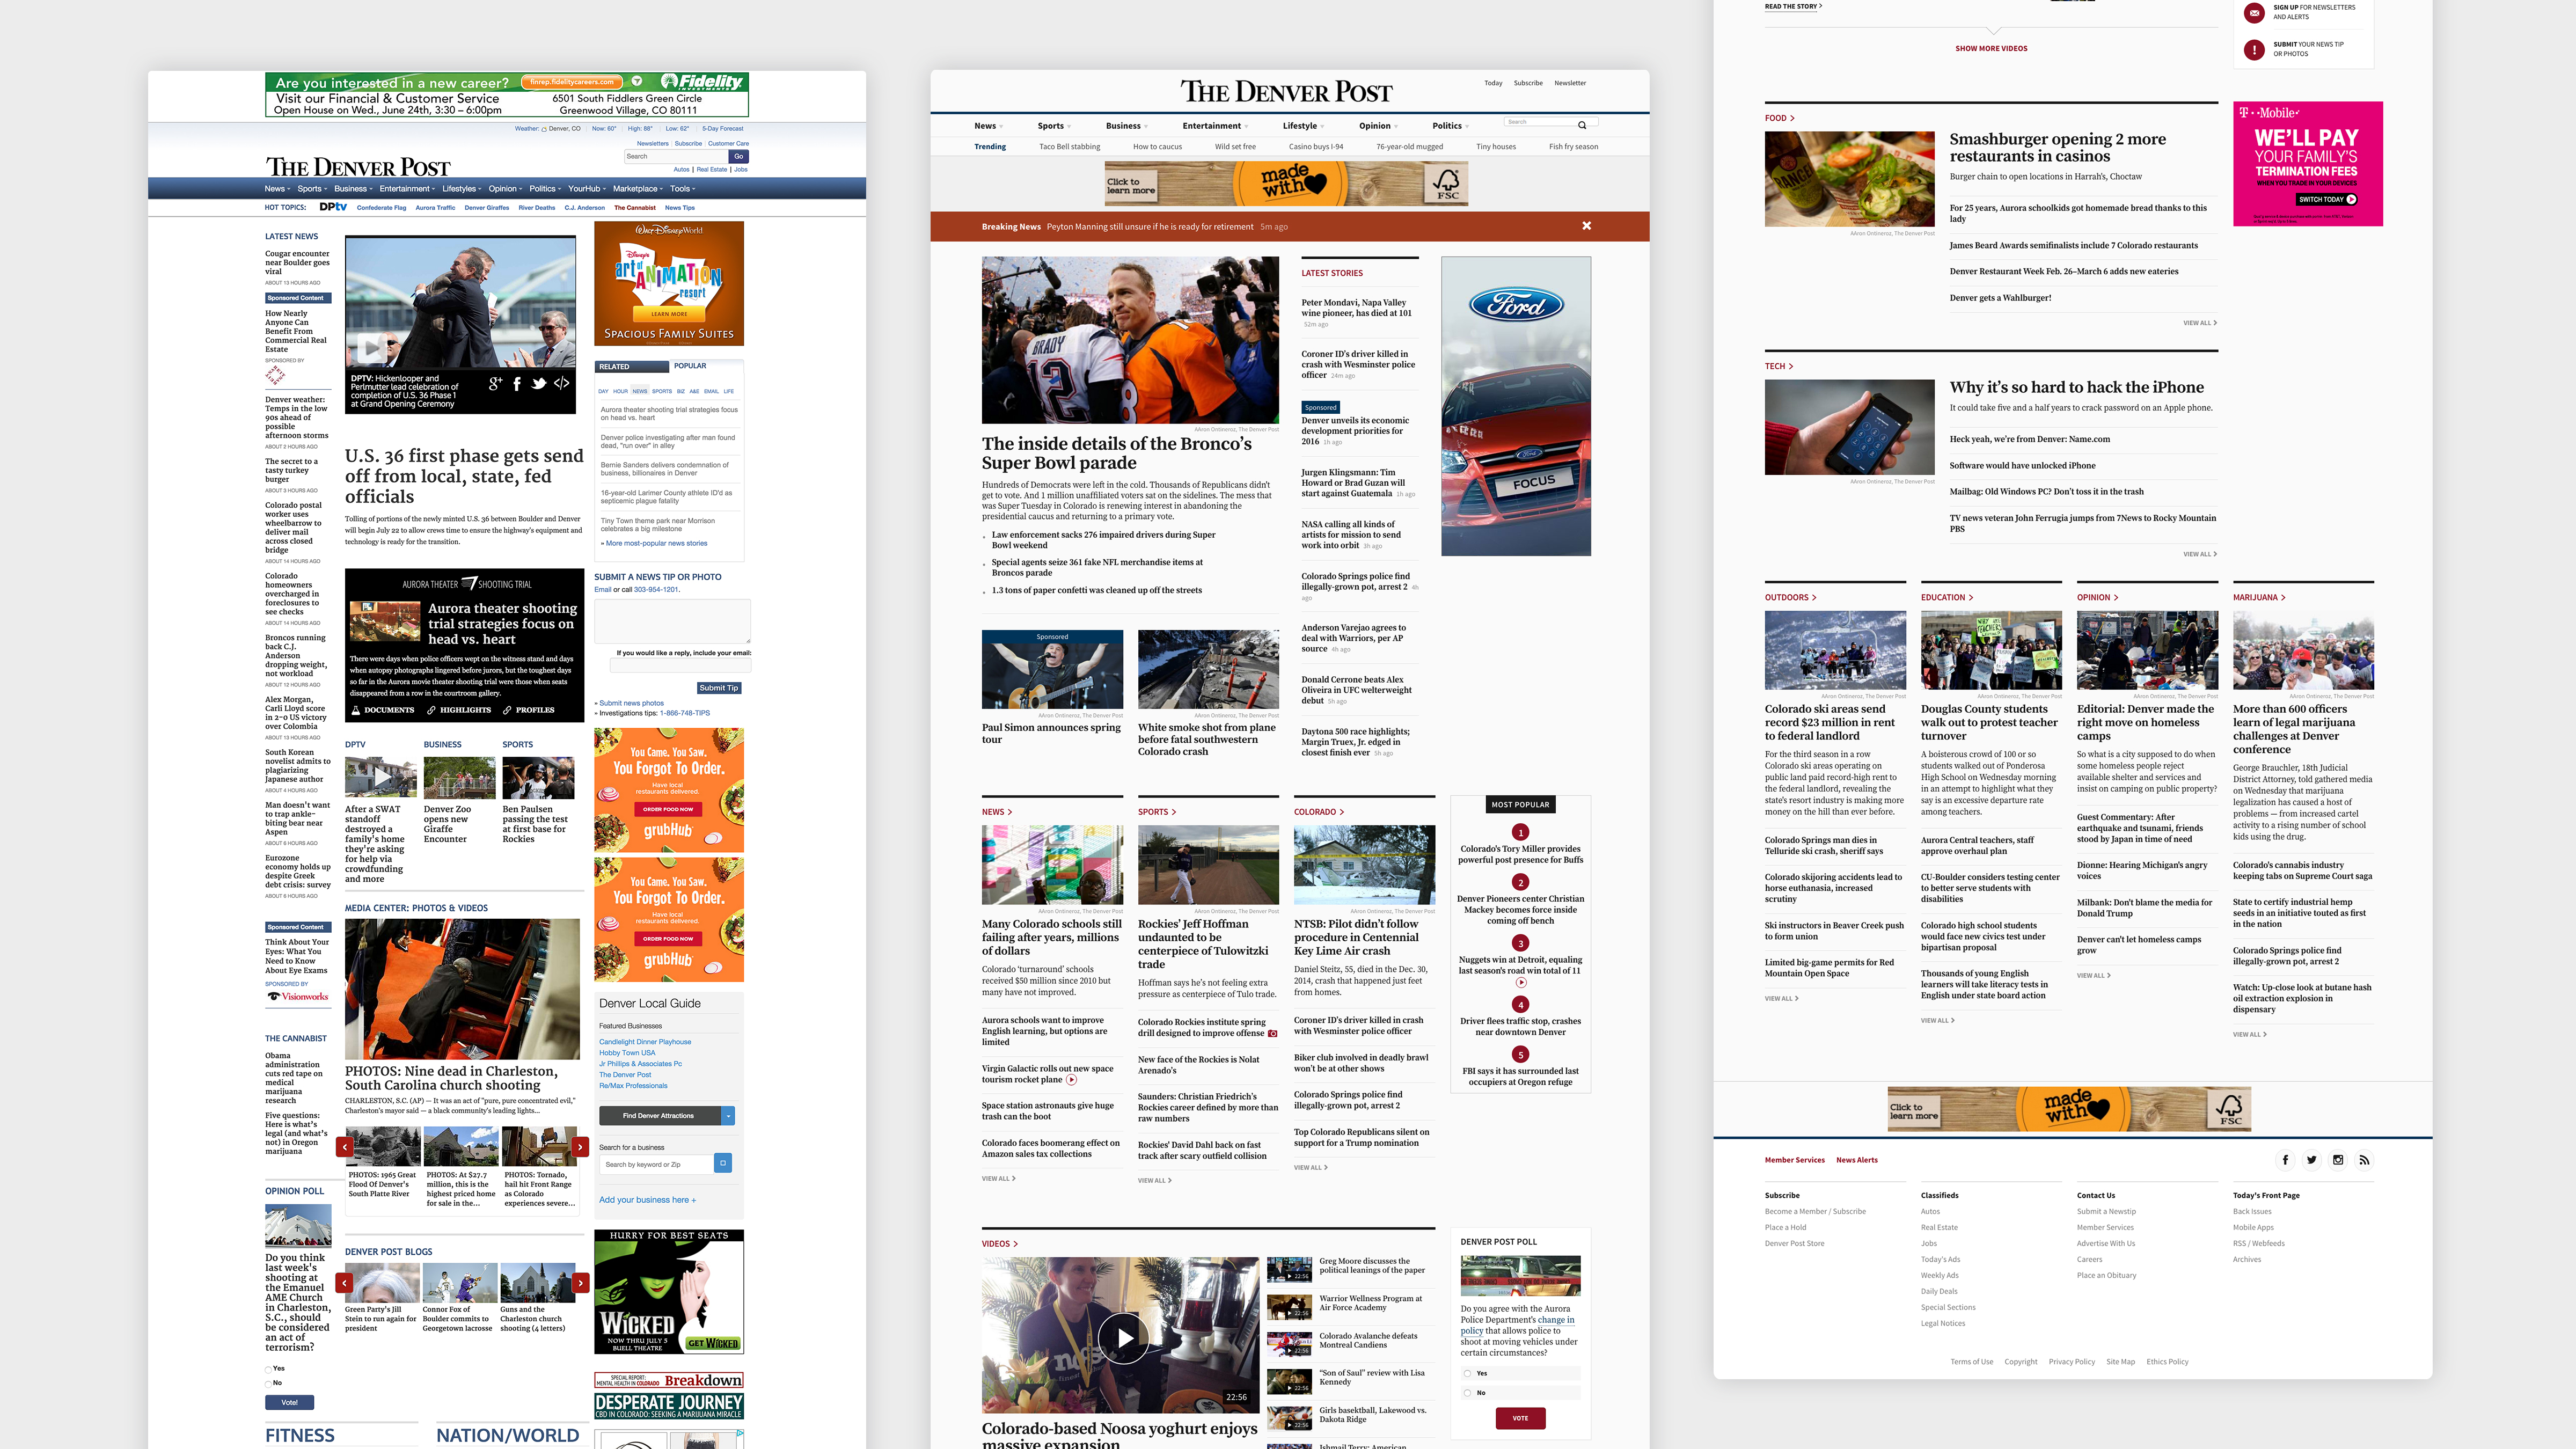 A before and after of the Denver Post redesign, comparing tighter text and smaller images, as well as a blue color scheme, on the left, with the new version of larger images, more space for text to breathe, and a dark orange color scheme on the right